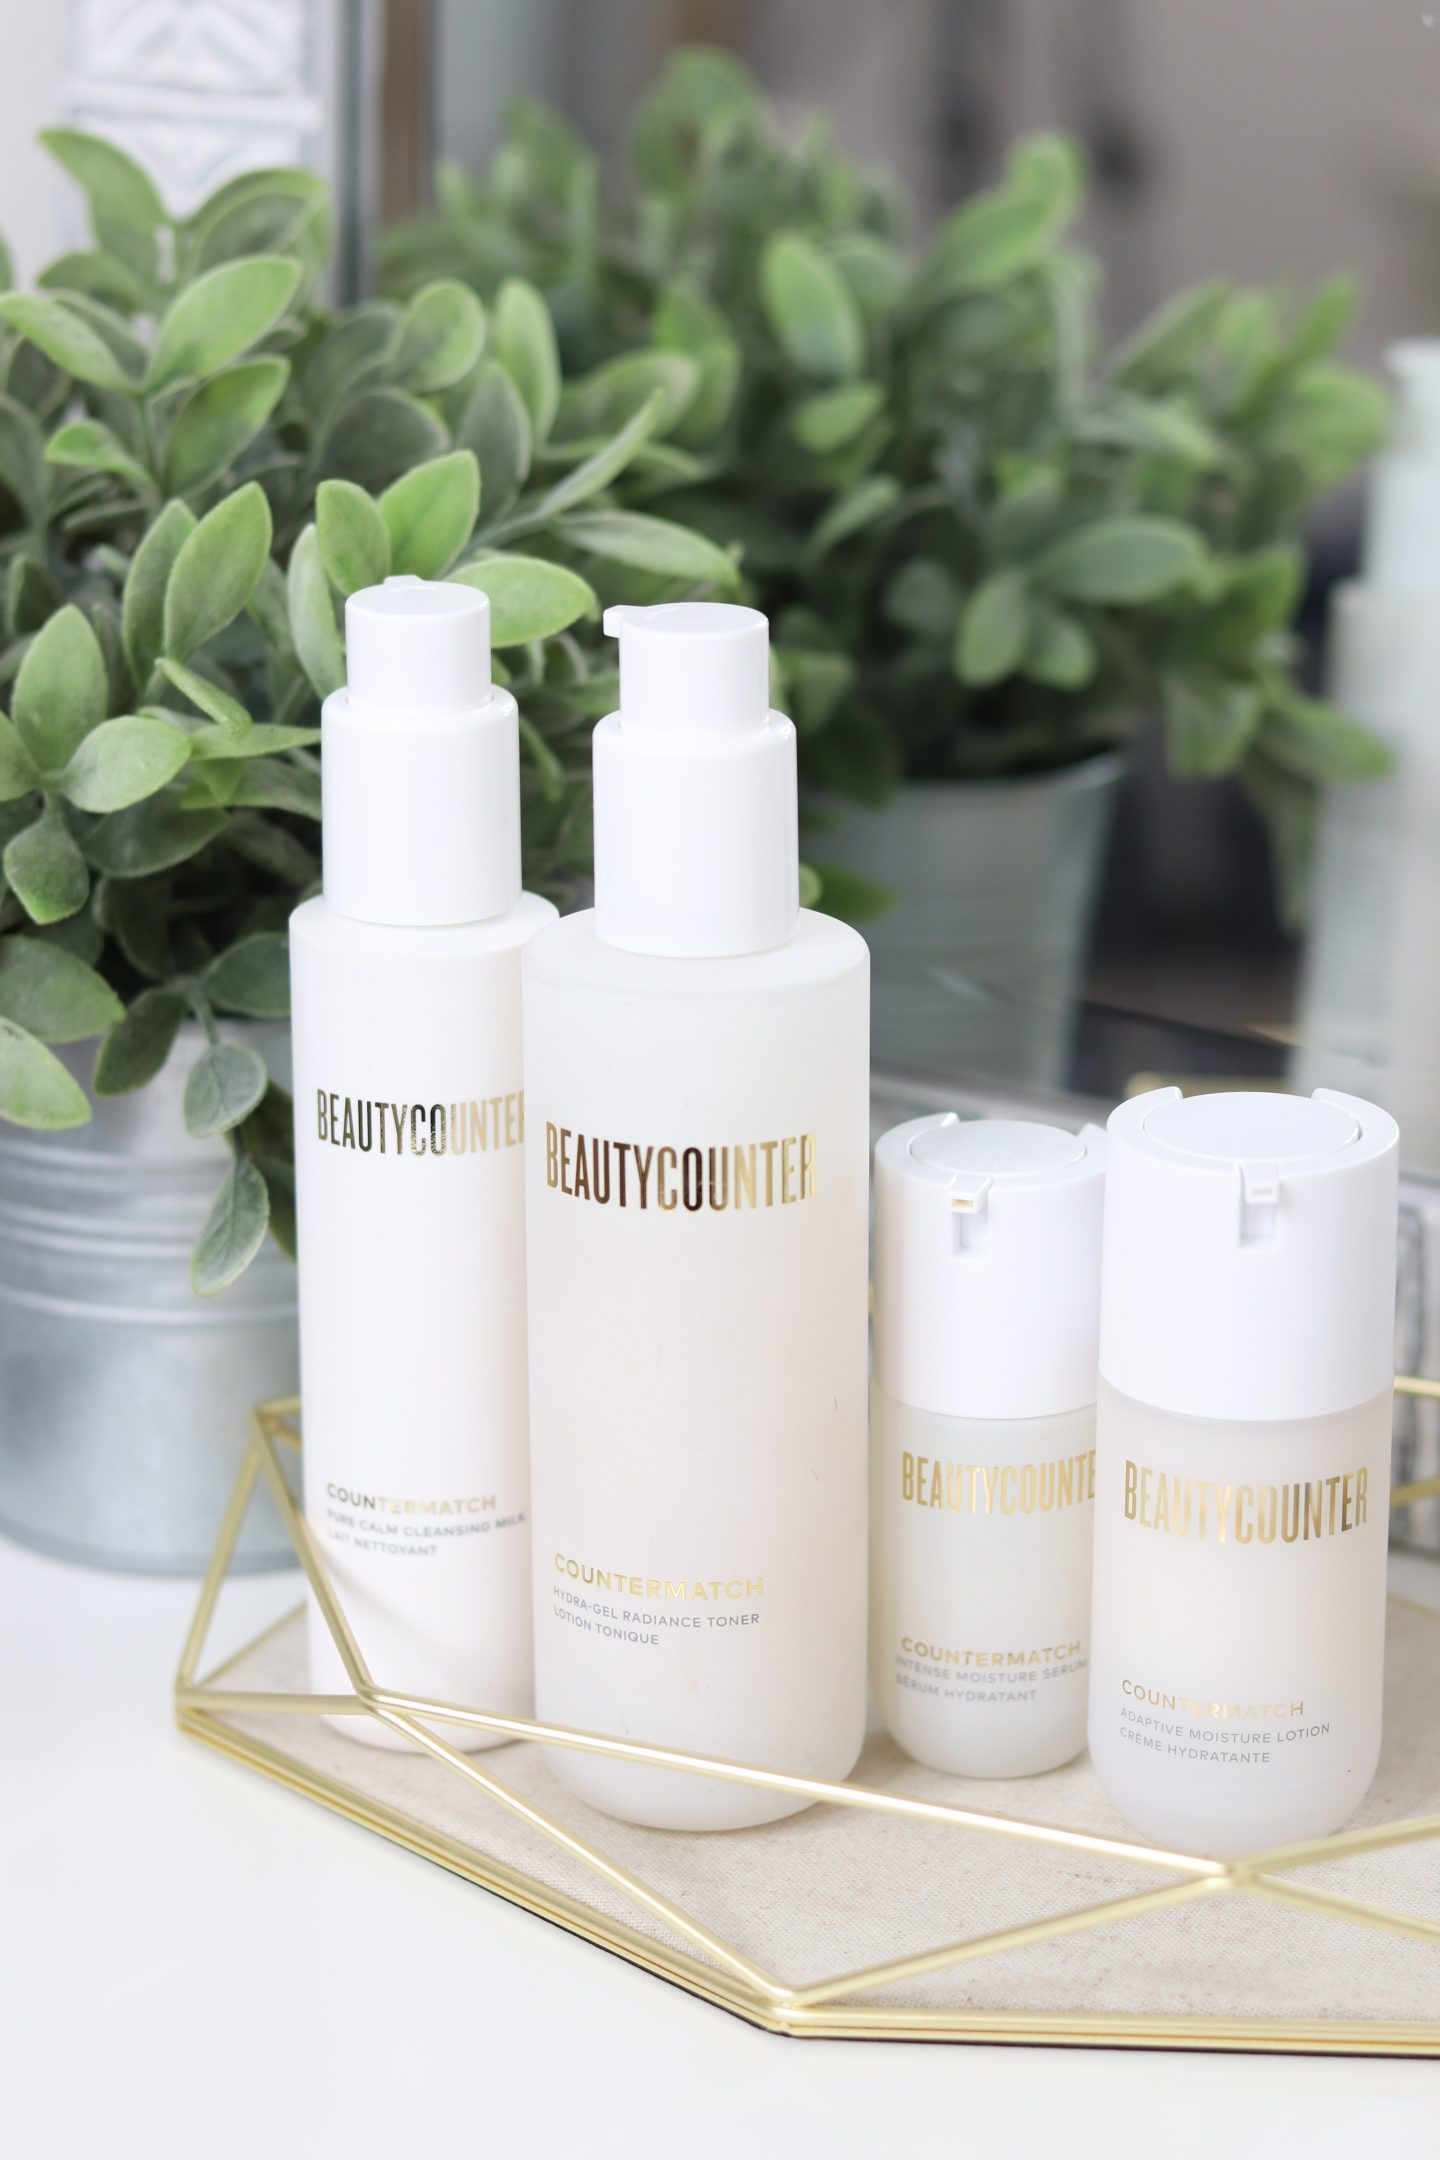 My 5 Favorite Beautycounter Skin Care Products | Beautycounter Countermatch Regimen | Age Prevention Clean Beauty Normal Sensitive Skin Care | Brighter Darling